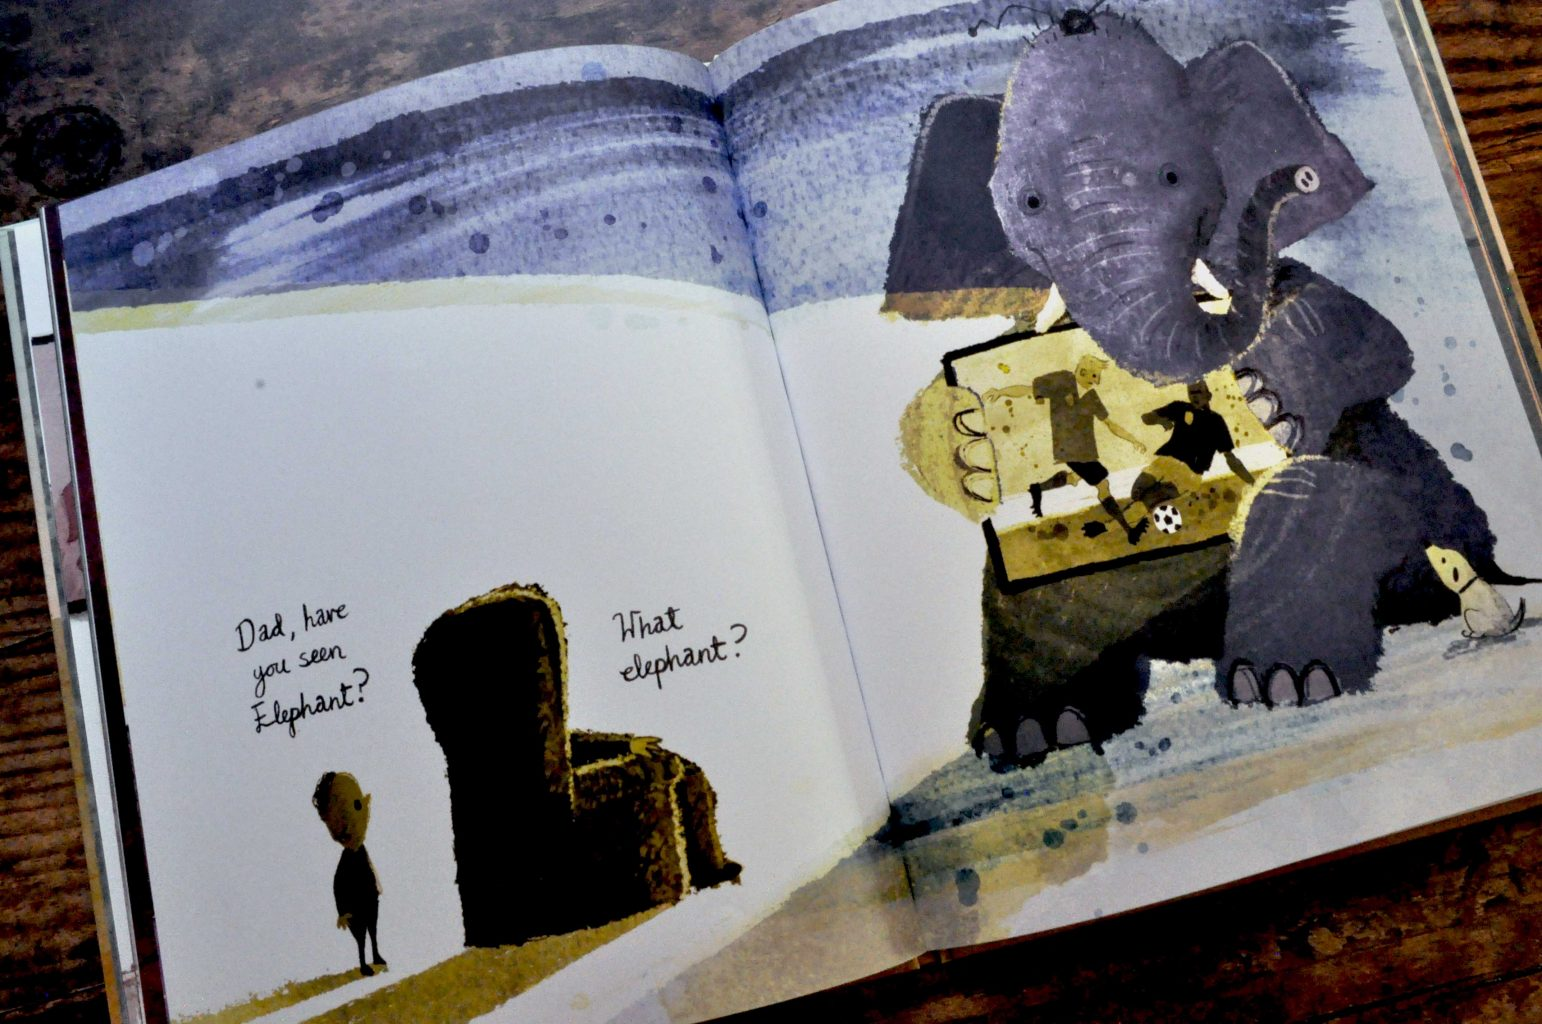 A page from 'Have You Seen Elephant' by David Barrow, showing Elephant holding a TV, yet not seen by a boy and his dad.